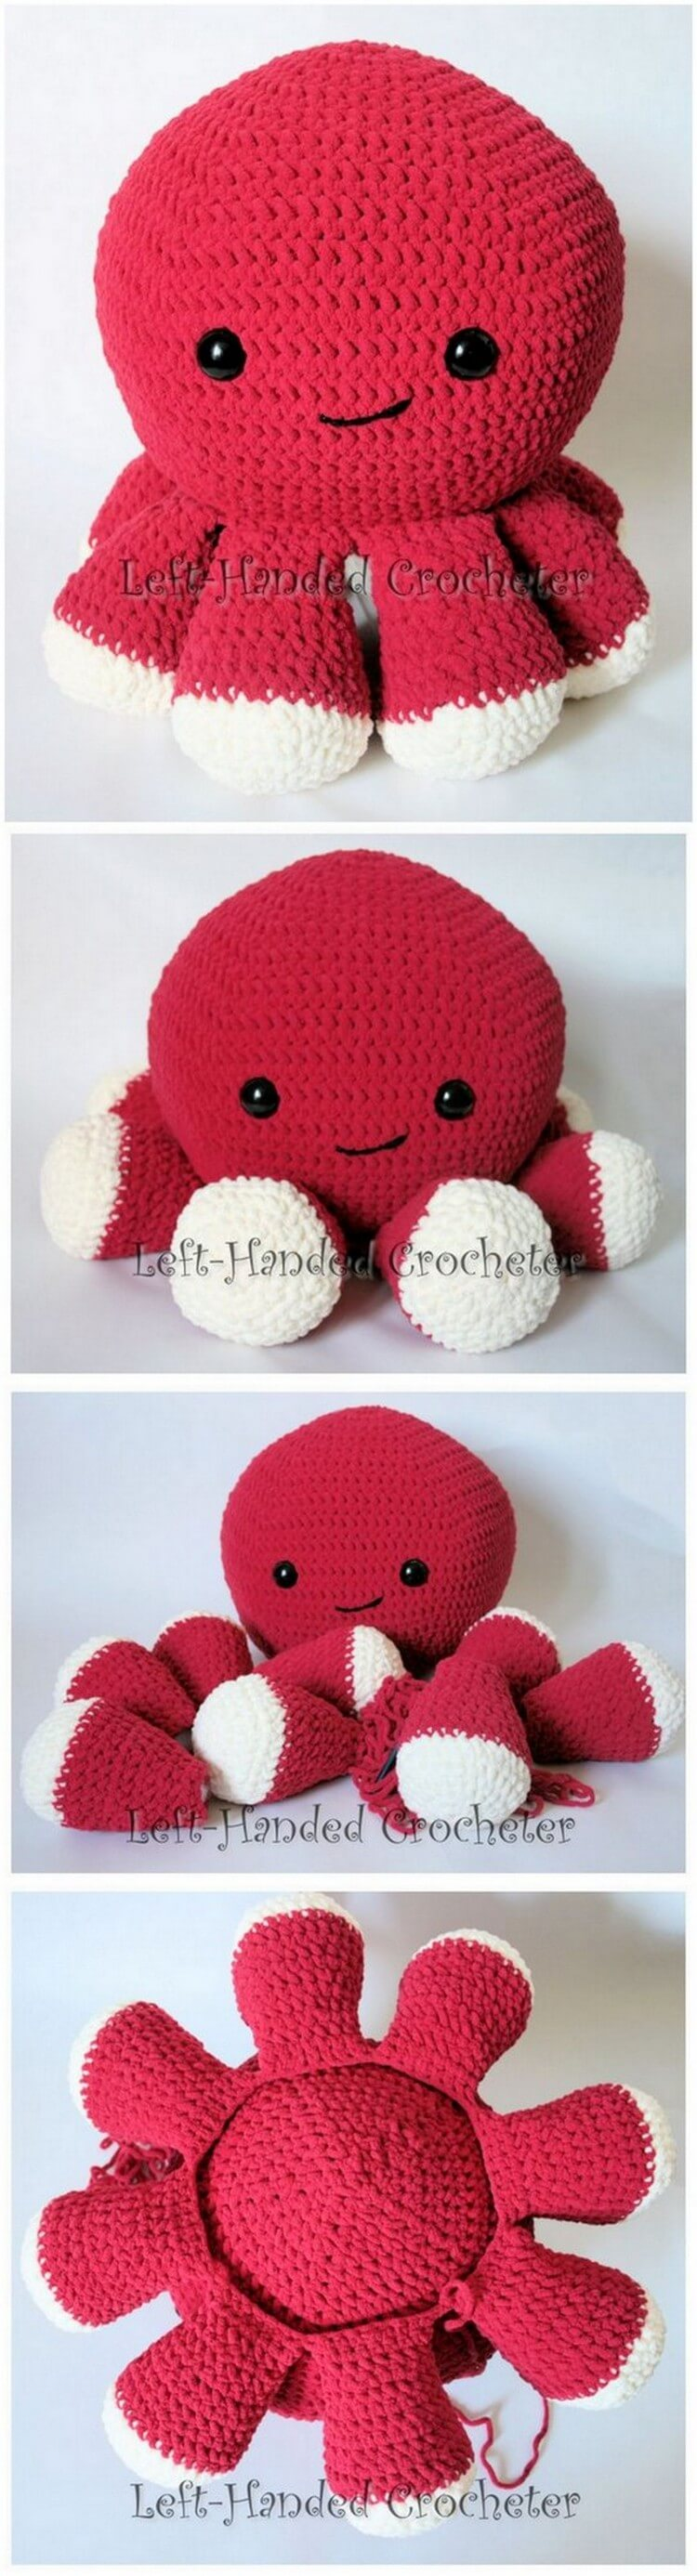 Creative Crochet Pattern (11)